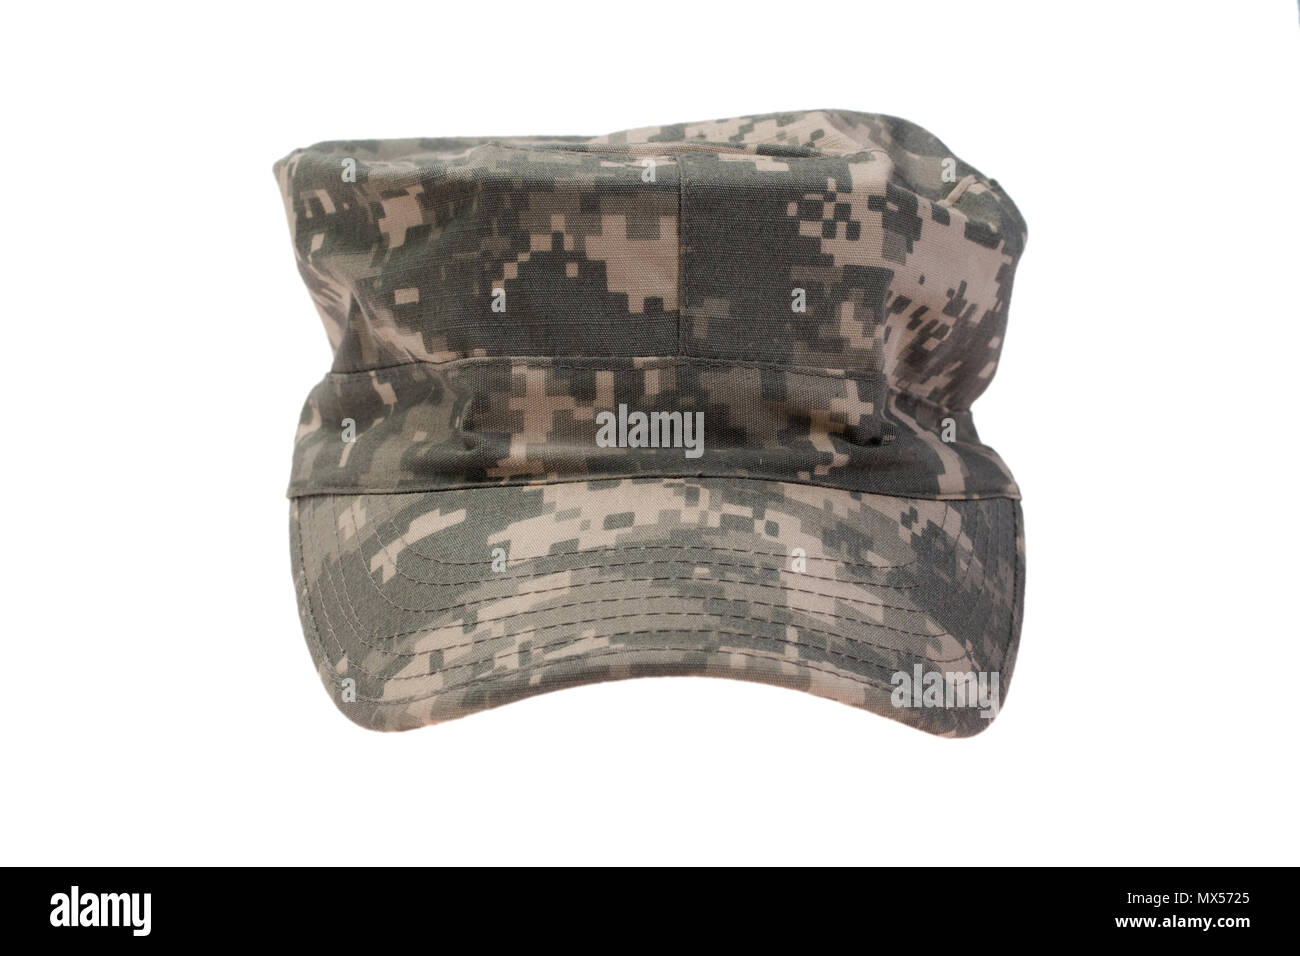 modern us army camouflaged cap on a white background - Stock Image